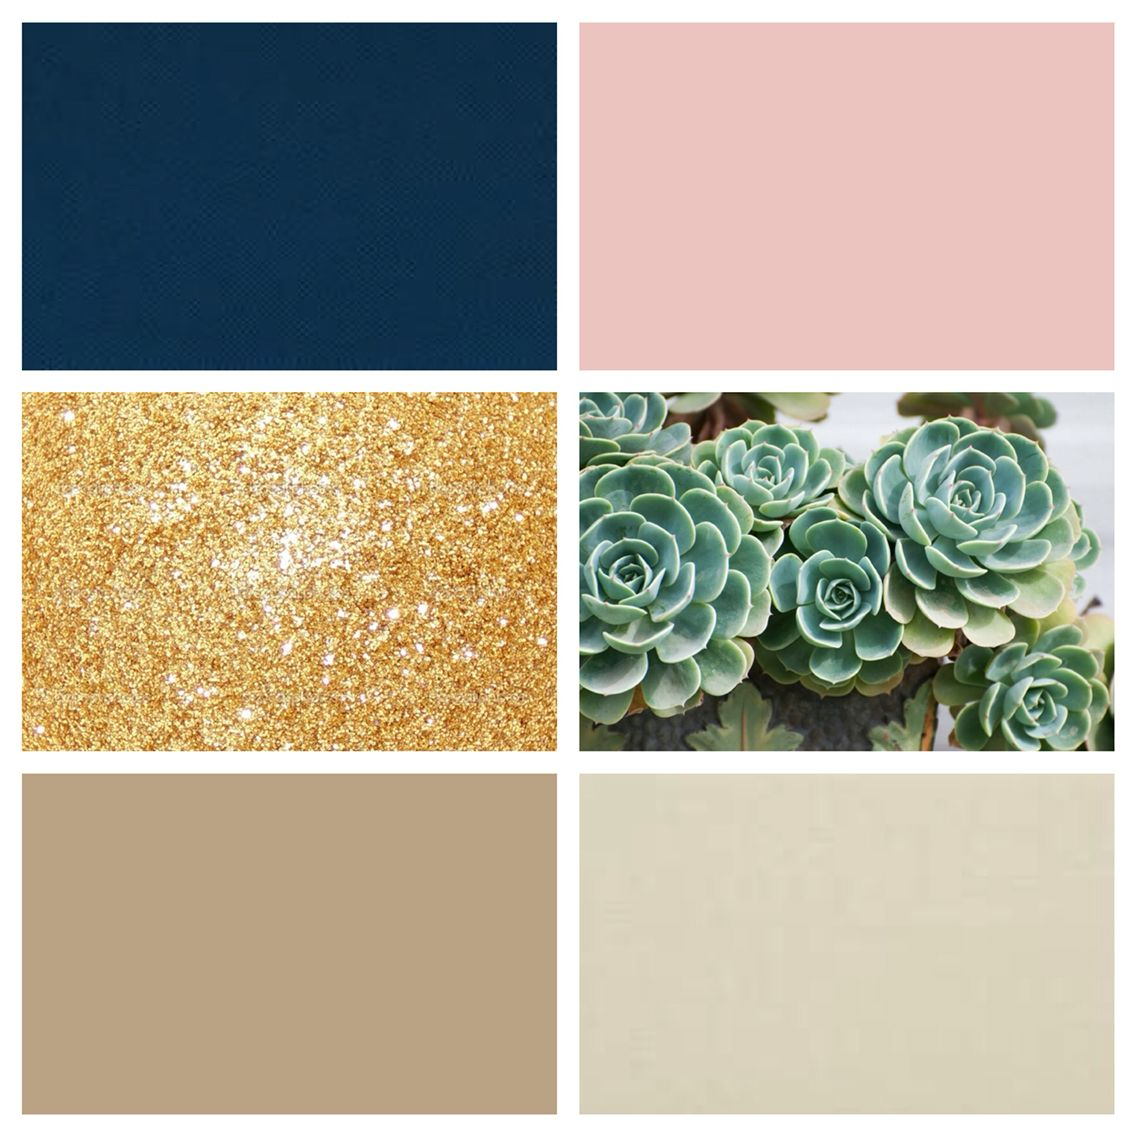 Bedroom color schemes gold - My Color Scheme Navy Blush Gold And Nudes With Succulent Green Accents